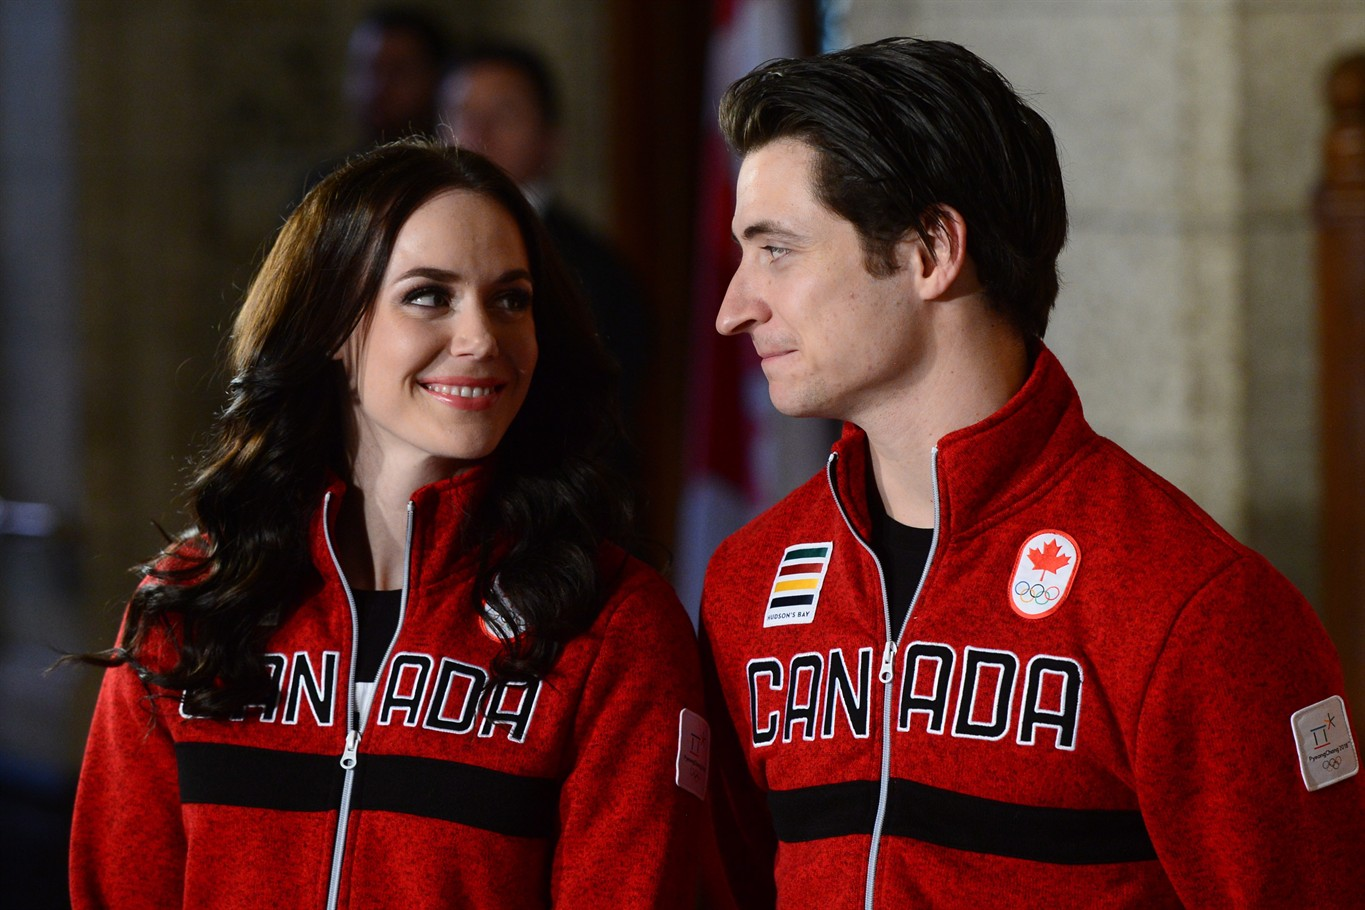 Virtue and Moir named flag bearers for Team Canada at PyeongChang games